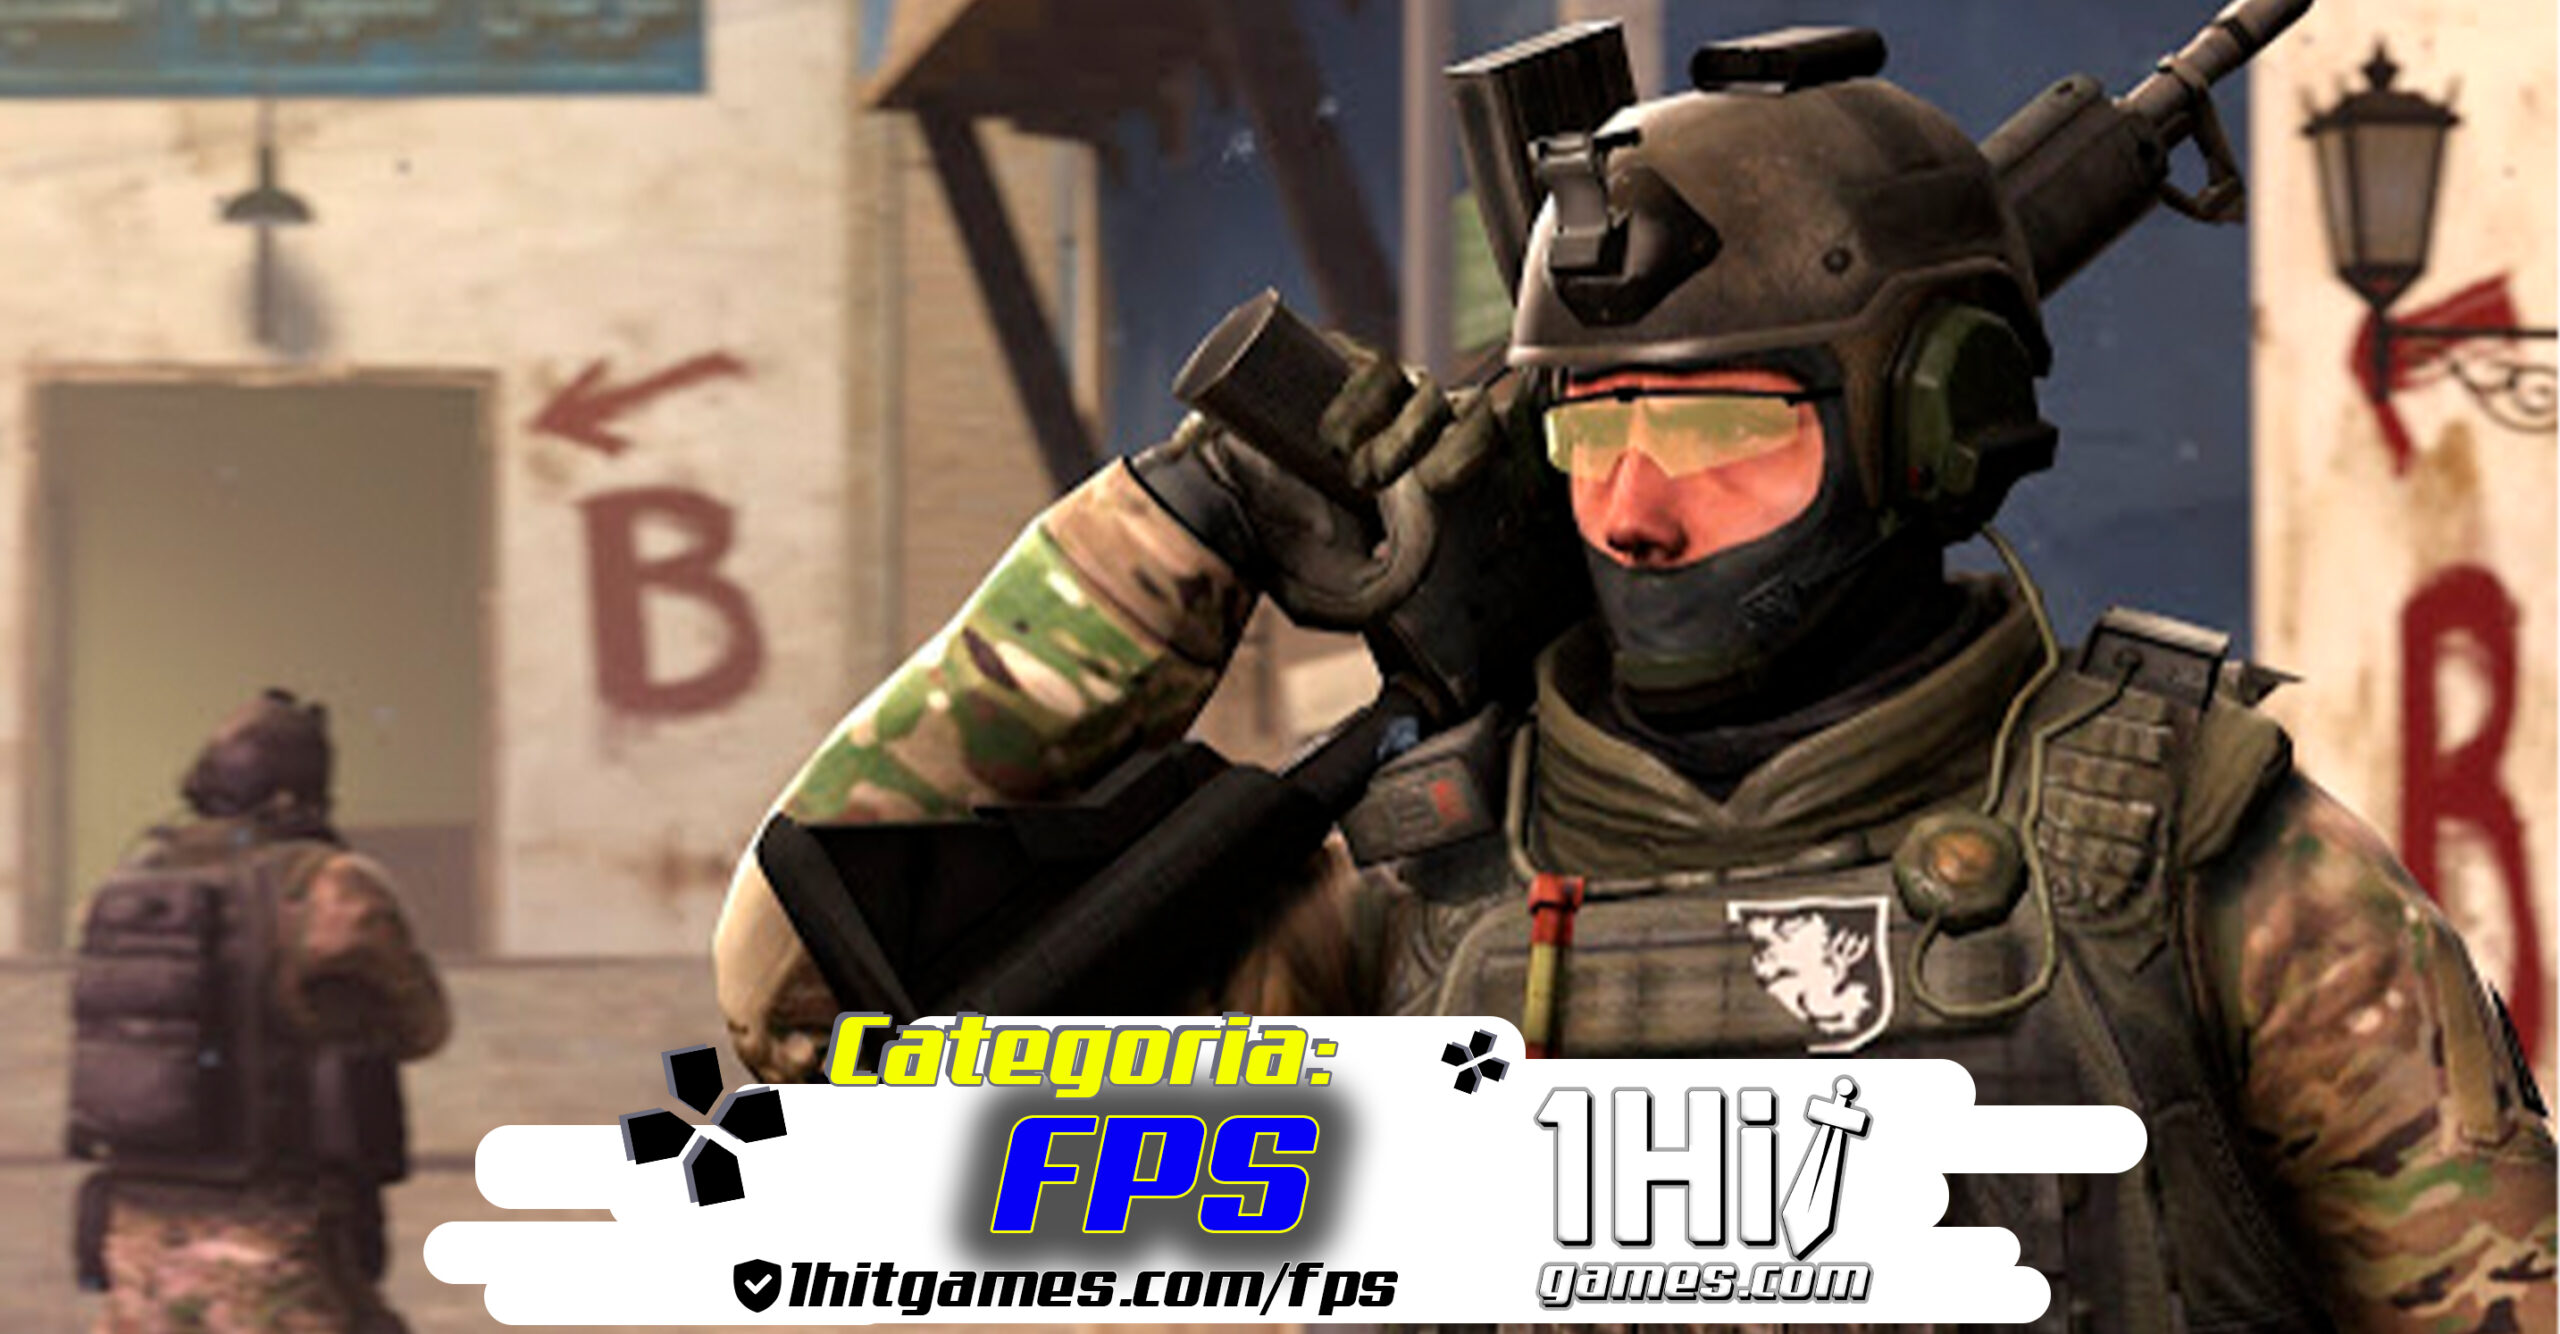 fps games 1hitgames jogos eletronicos categorias 1hit tiro gamers first person shooter